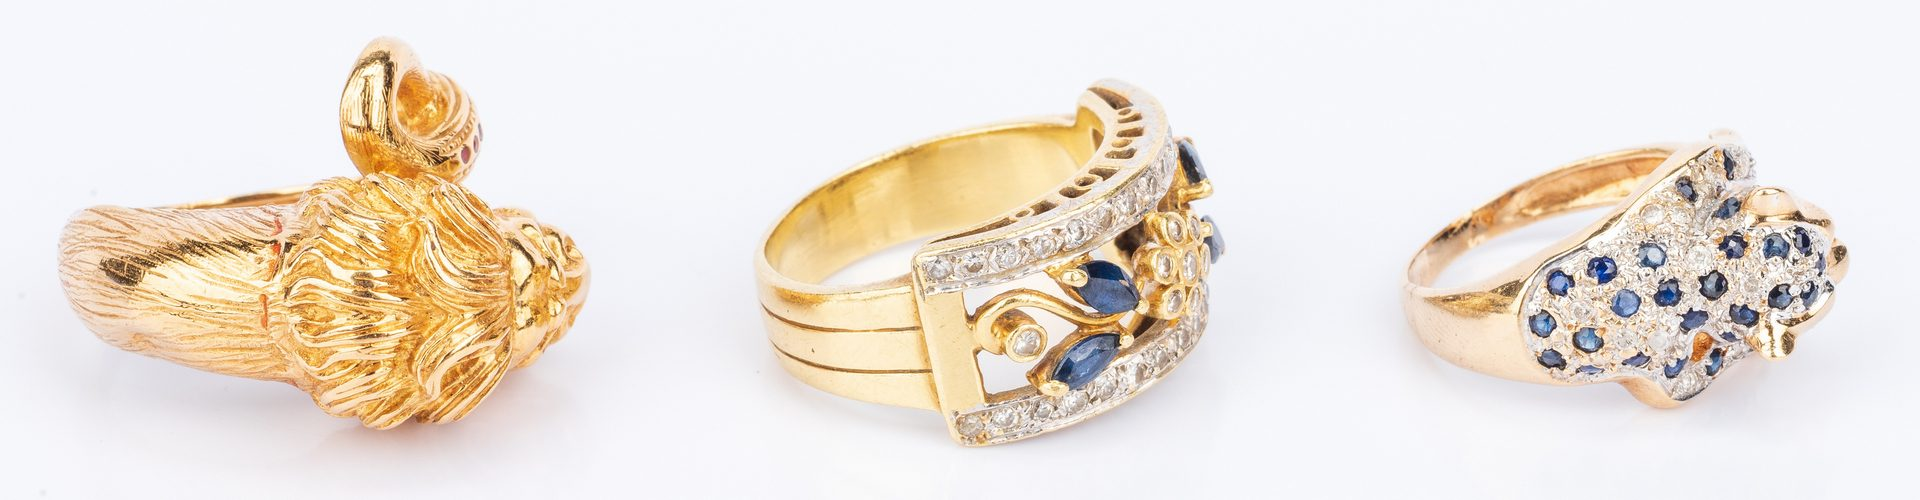 Lot 400: 3 18K; 14K Fashion Rings inc. leopard, lion